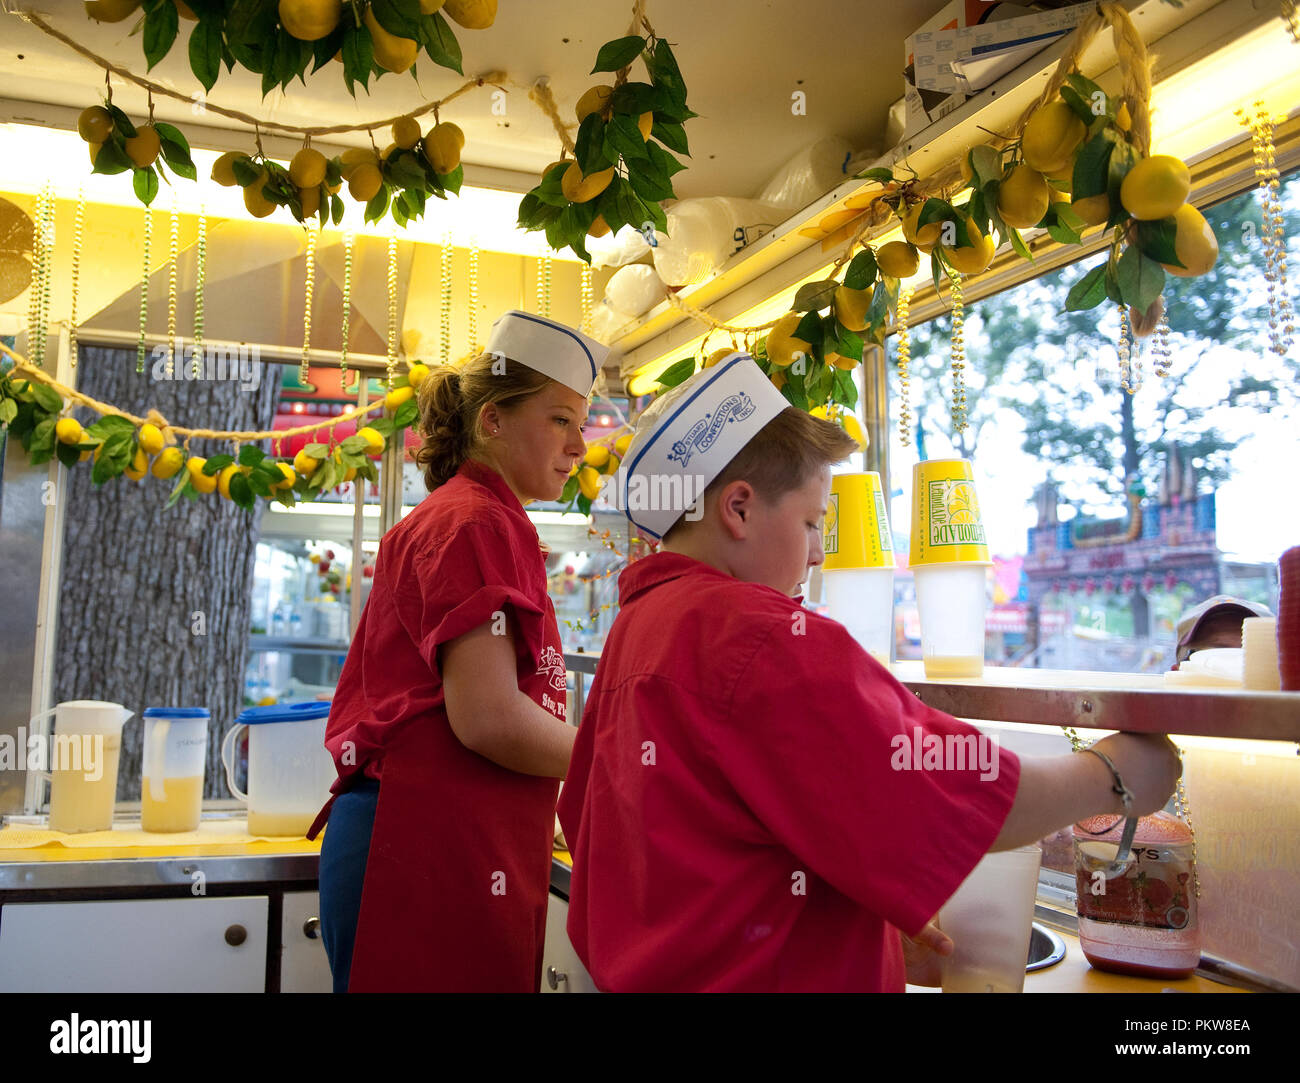 The heat wave made the lemondaid stand a big hit on the mid-way at the 56th Annual Clarke County Fair. - Stock Image